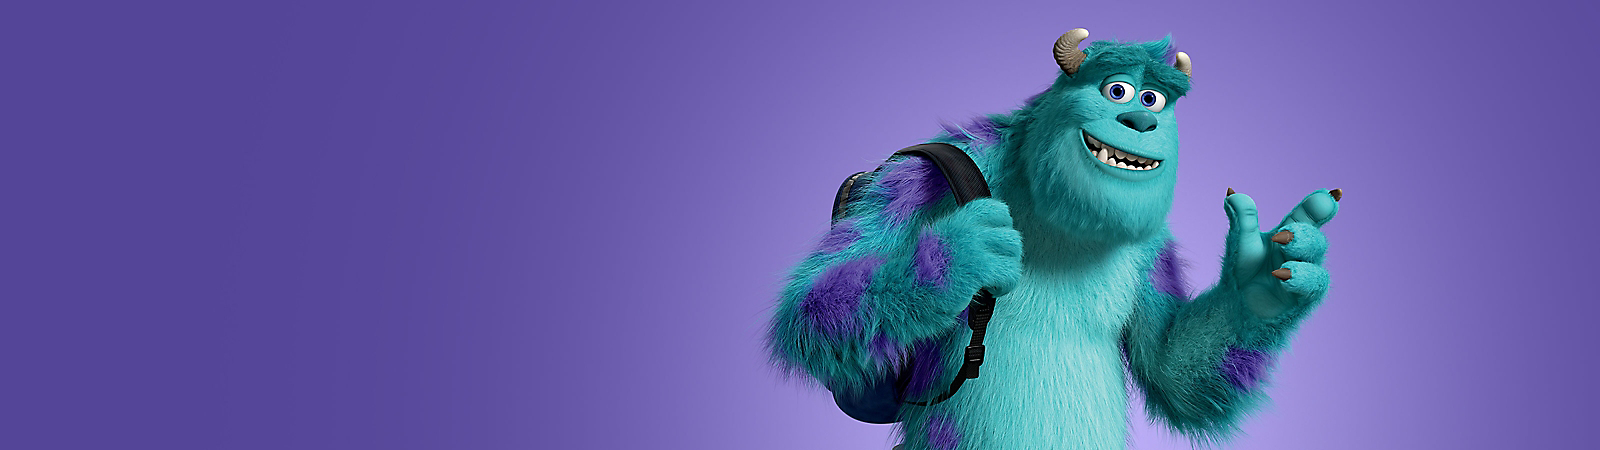 Background image of Sulley